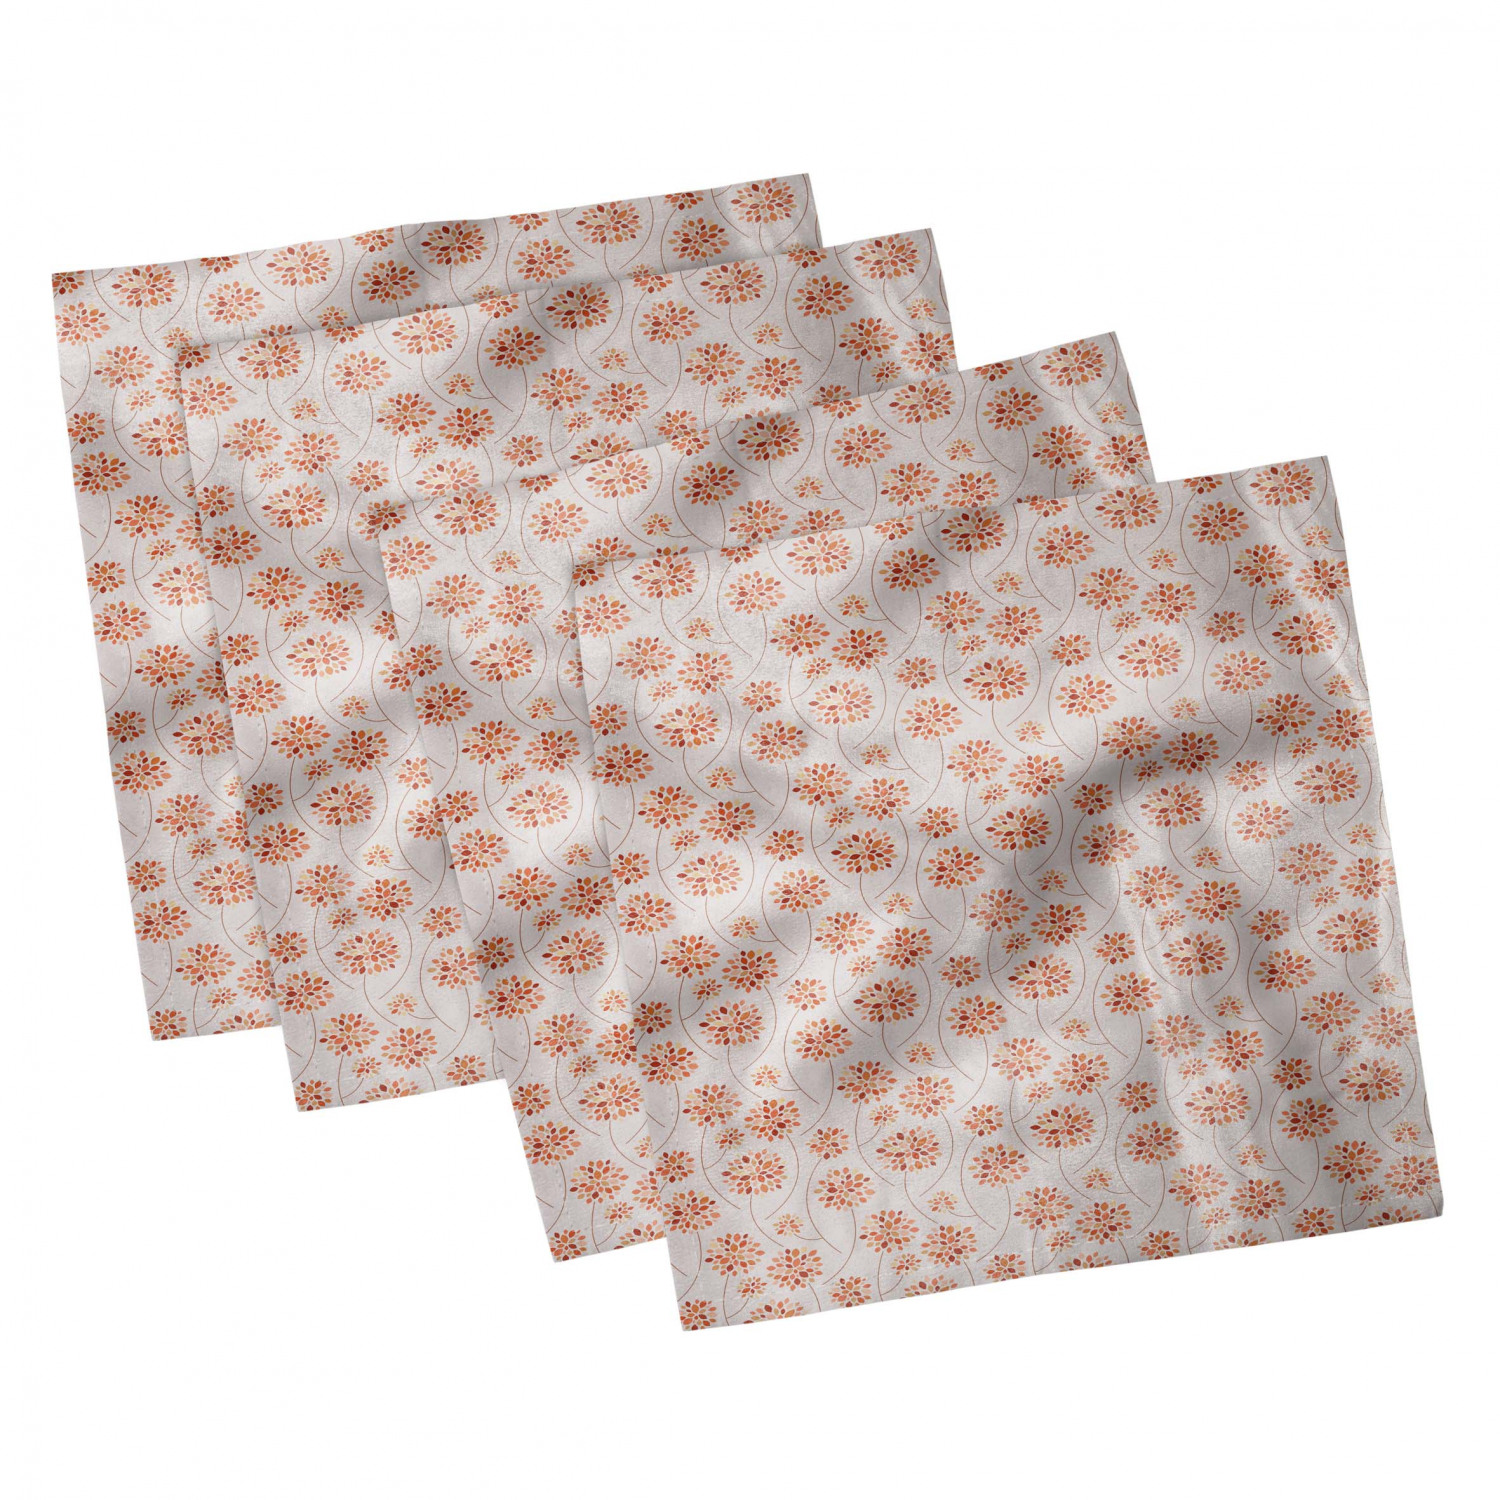 thumbnail 7 - Ambesonne-Autumn-Fall-Decorative-Satin-Napkins-Set-of-4-Party-Dinner-Fabric